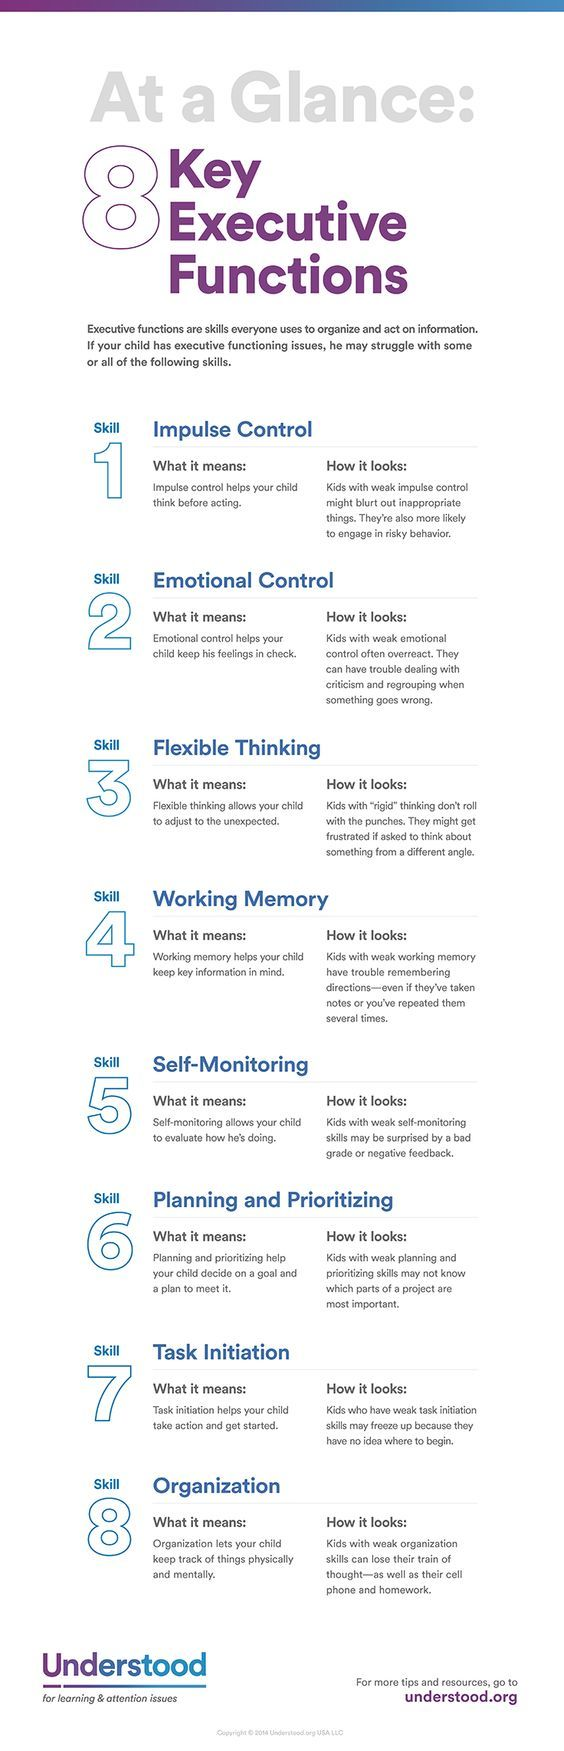 Executive functions let people plan, organize and complete tasks. Here's a closer look at this important set of skills—and how executive functioning issues can affect your child's everyday life.: